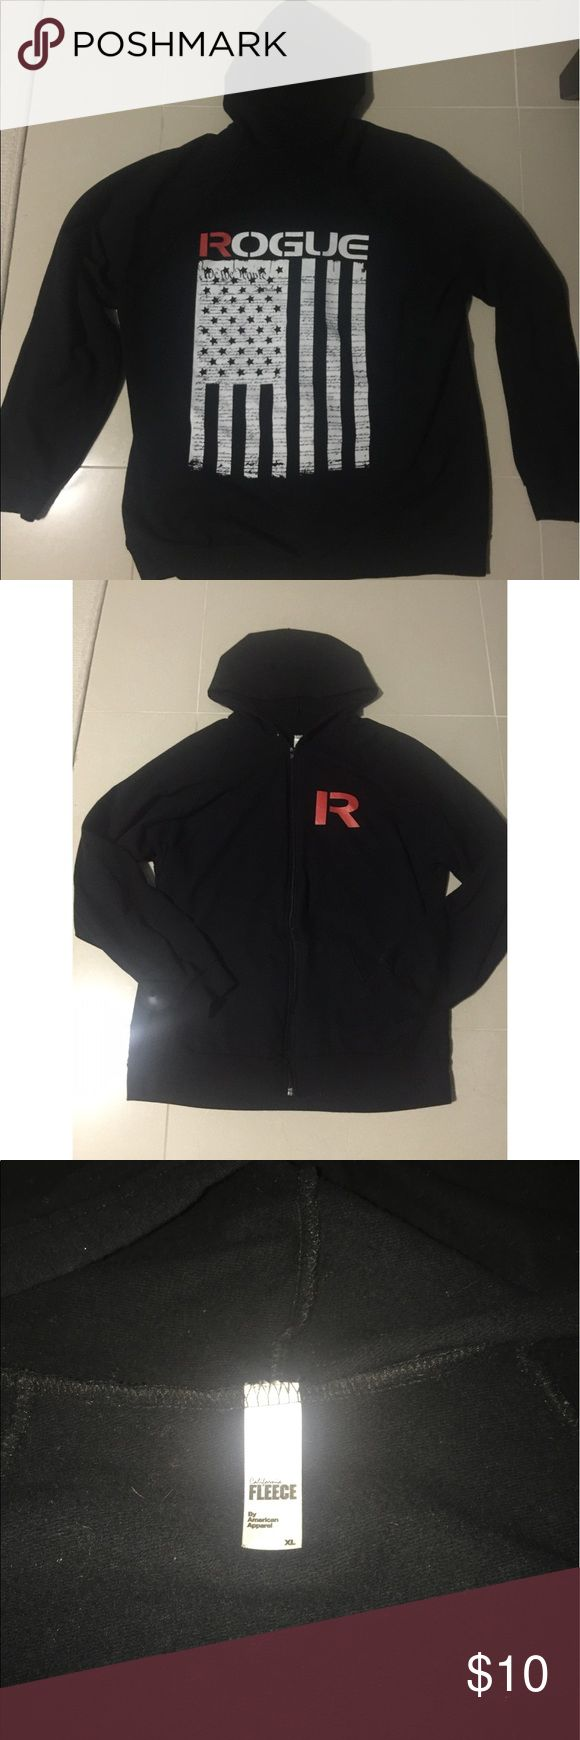 Men's Rogue Fitness hoodie jacket Men's Rogue Fitness fleece hoodie jacket. The jacket is very comfy, but the drawstring came out in the washing machine. Still in excellent condition beyond the missing drawstring. Jackets & Coats Performance Jackets